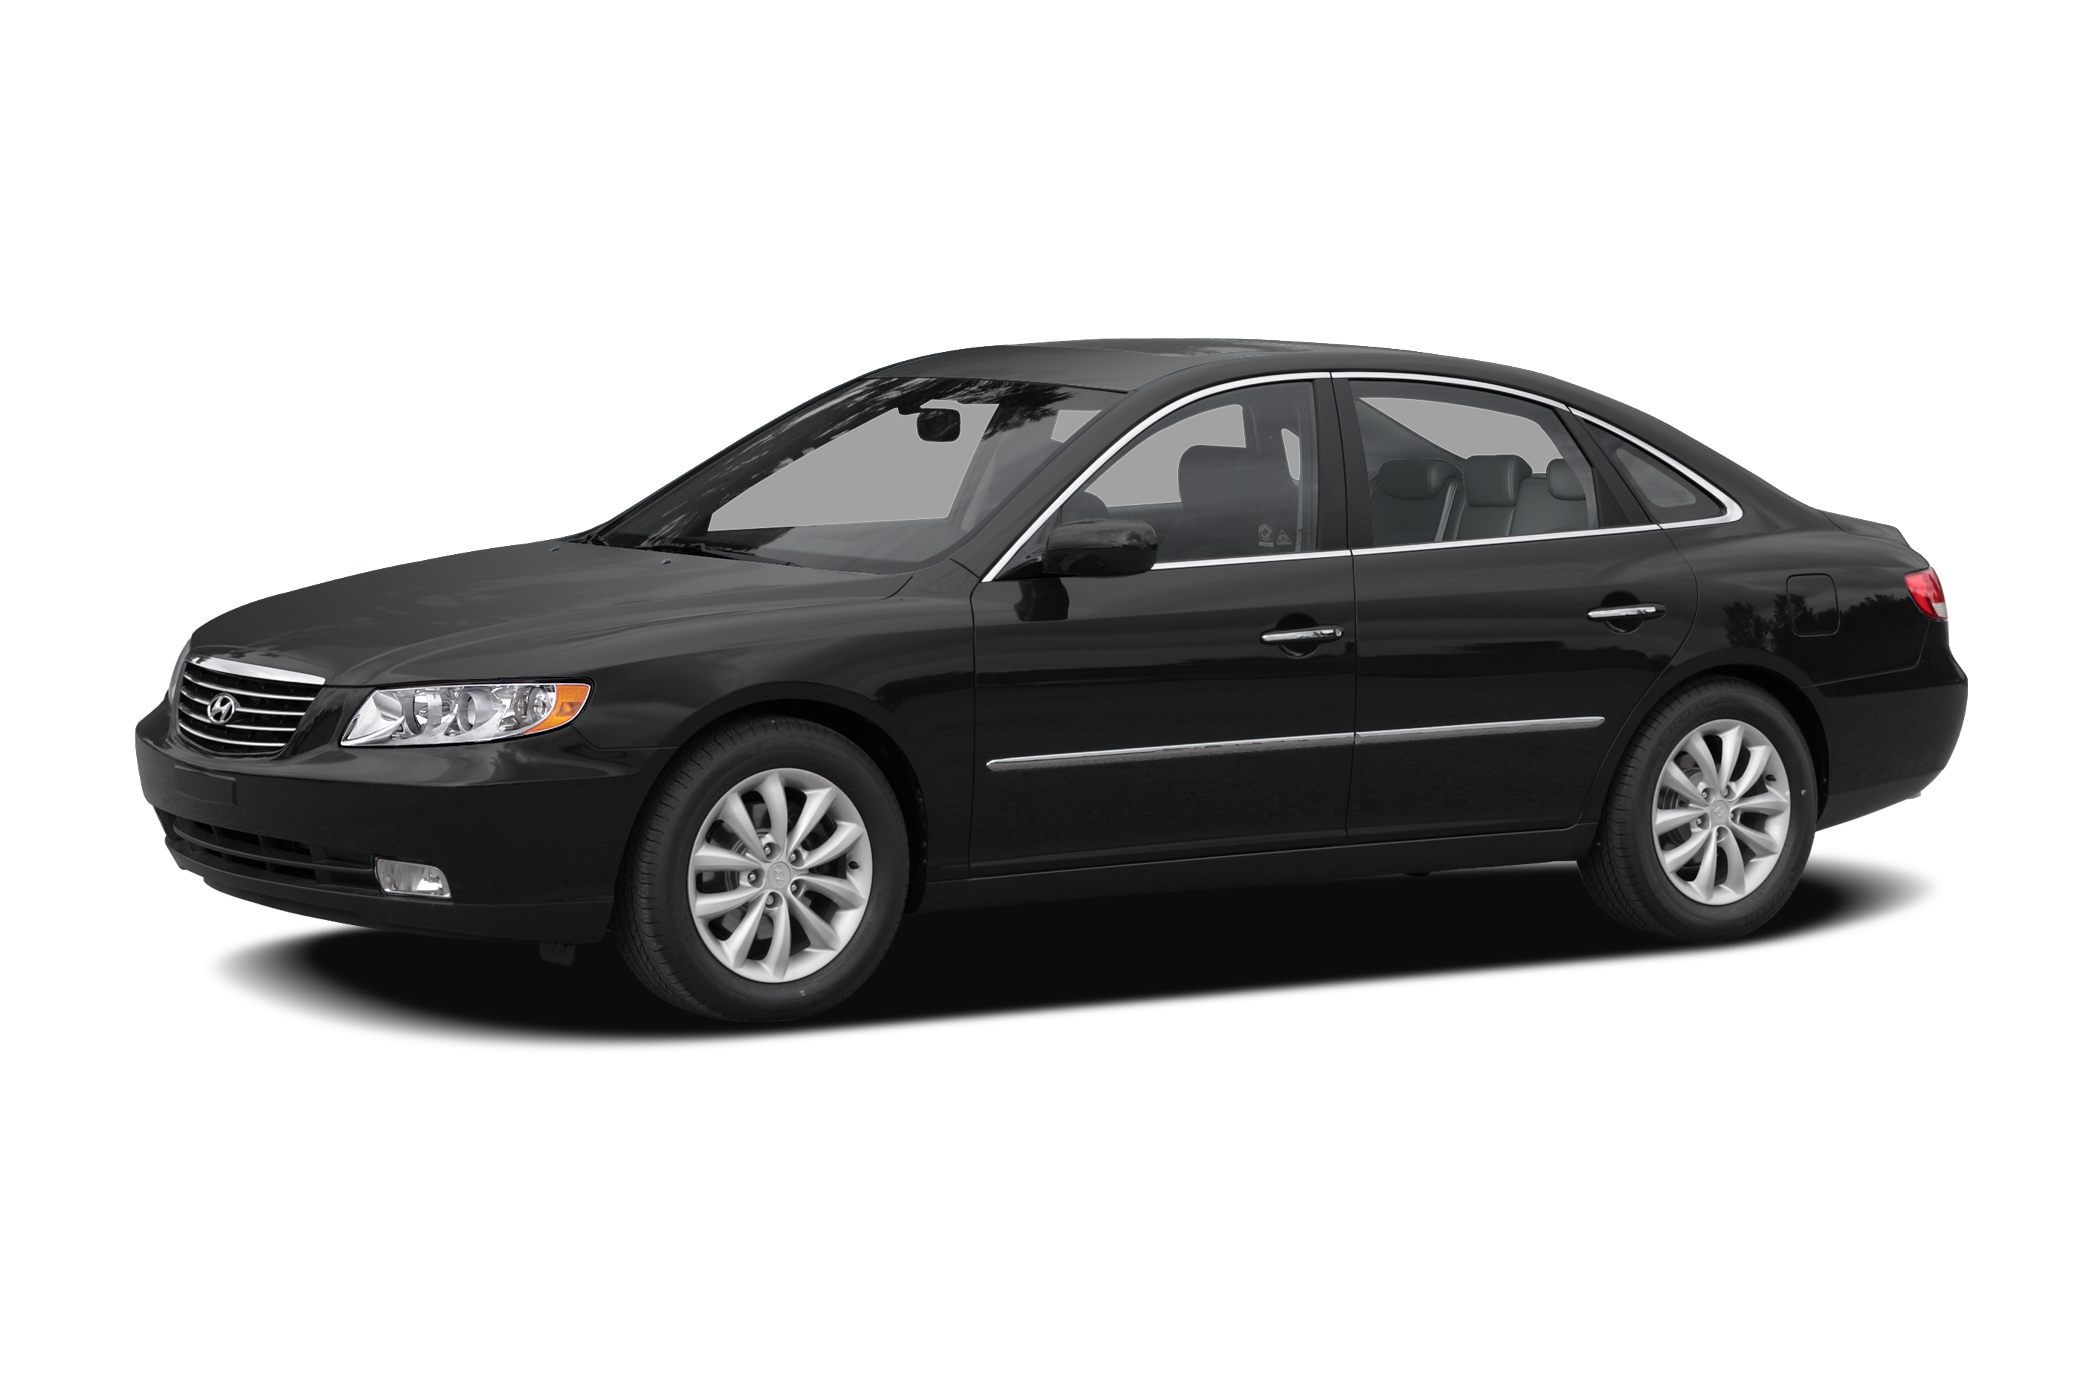 2007 Hyundai Azera Limited Leather Package Power Sunroof with Tilt Slide and Premium Package A